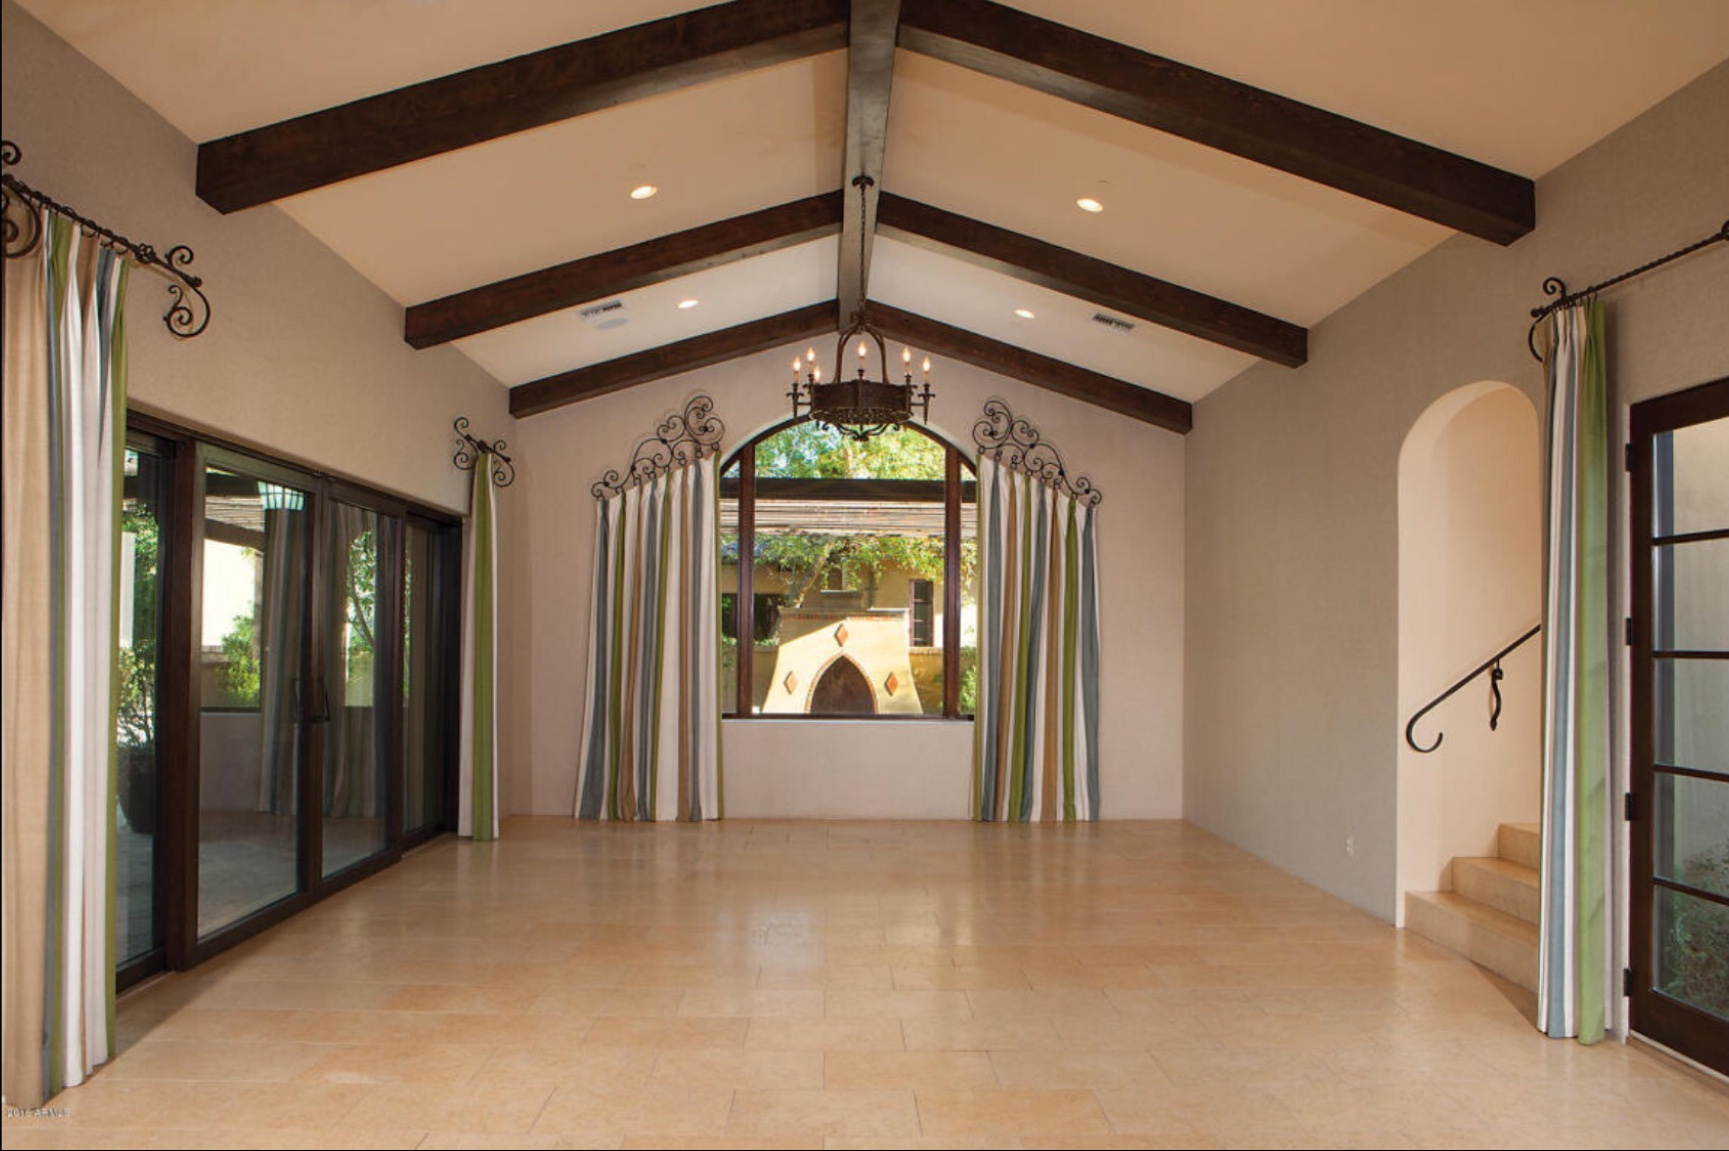 Staged Home Tour: $2.2 Million Tuscan Style Luxury Arizona Home 1 Before.jpg